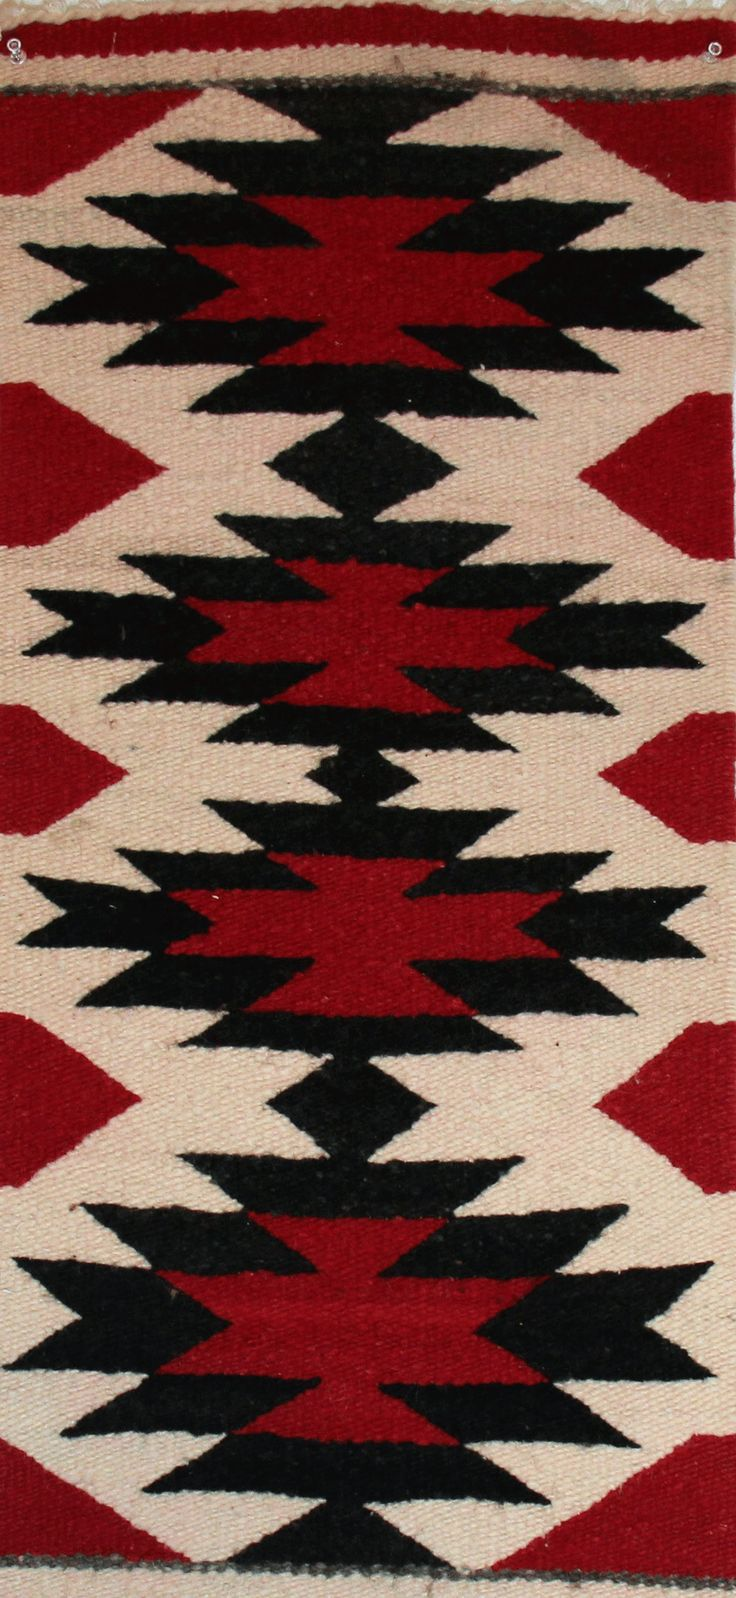 17 best ideas about navajo rugs on pinterest indian rugs for Native american furniture designs